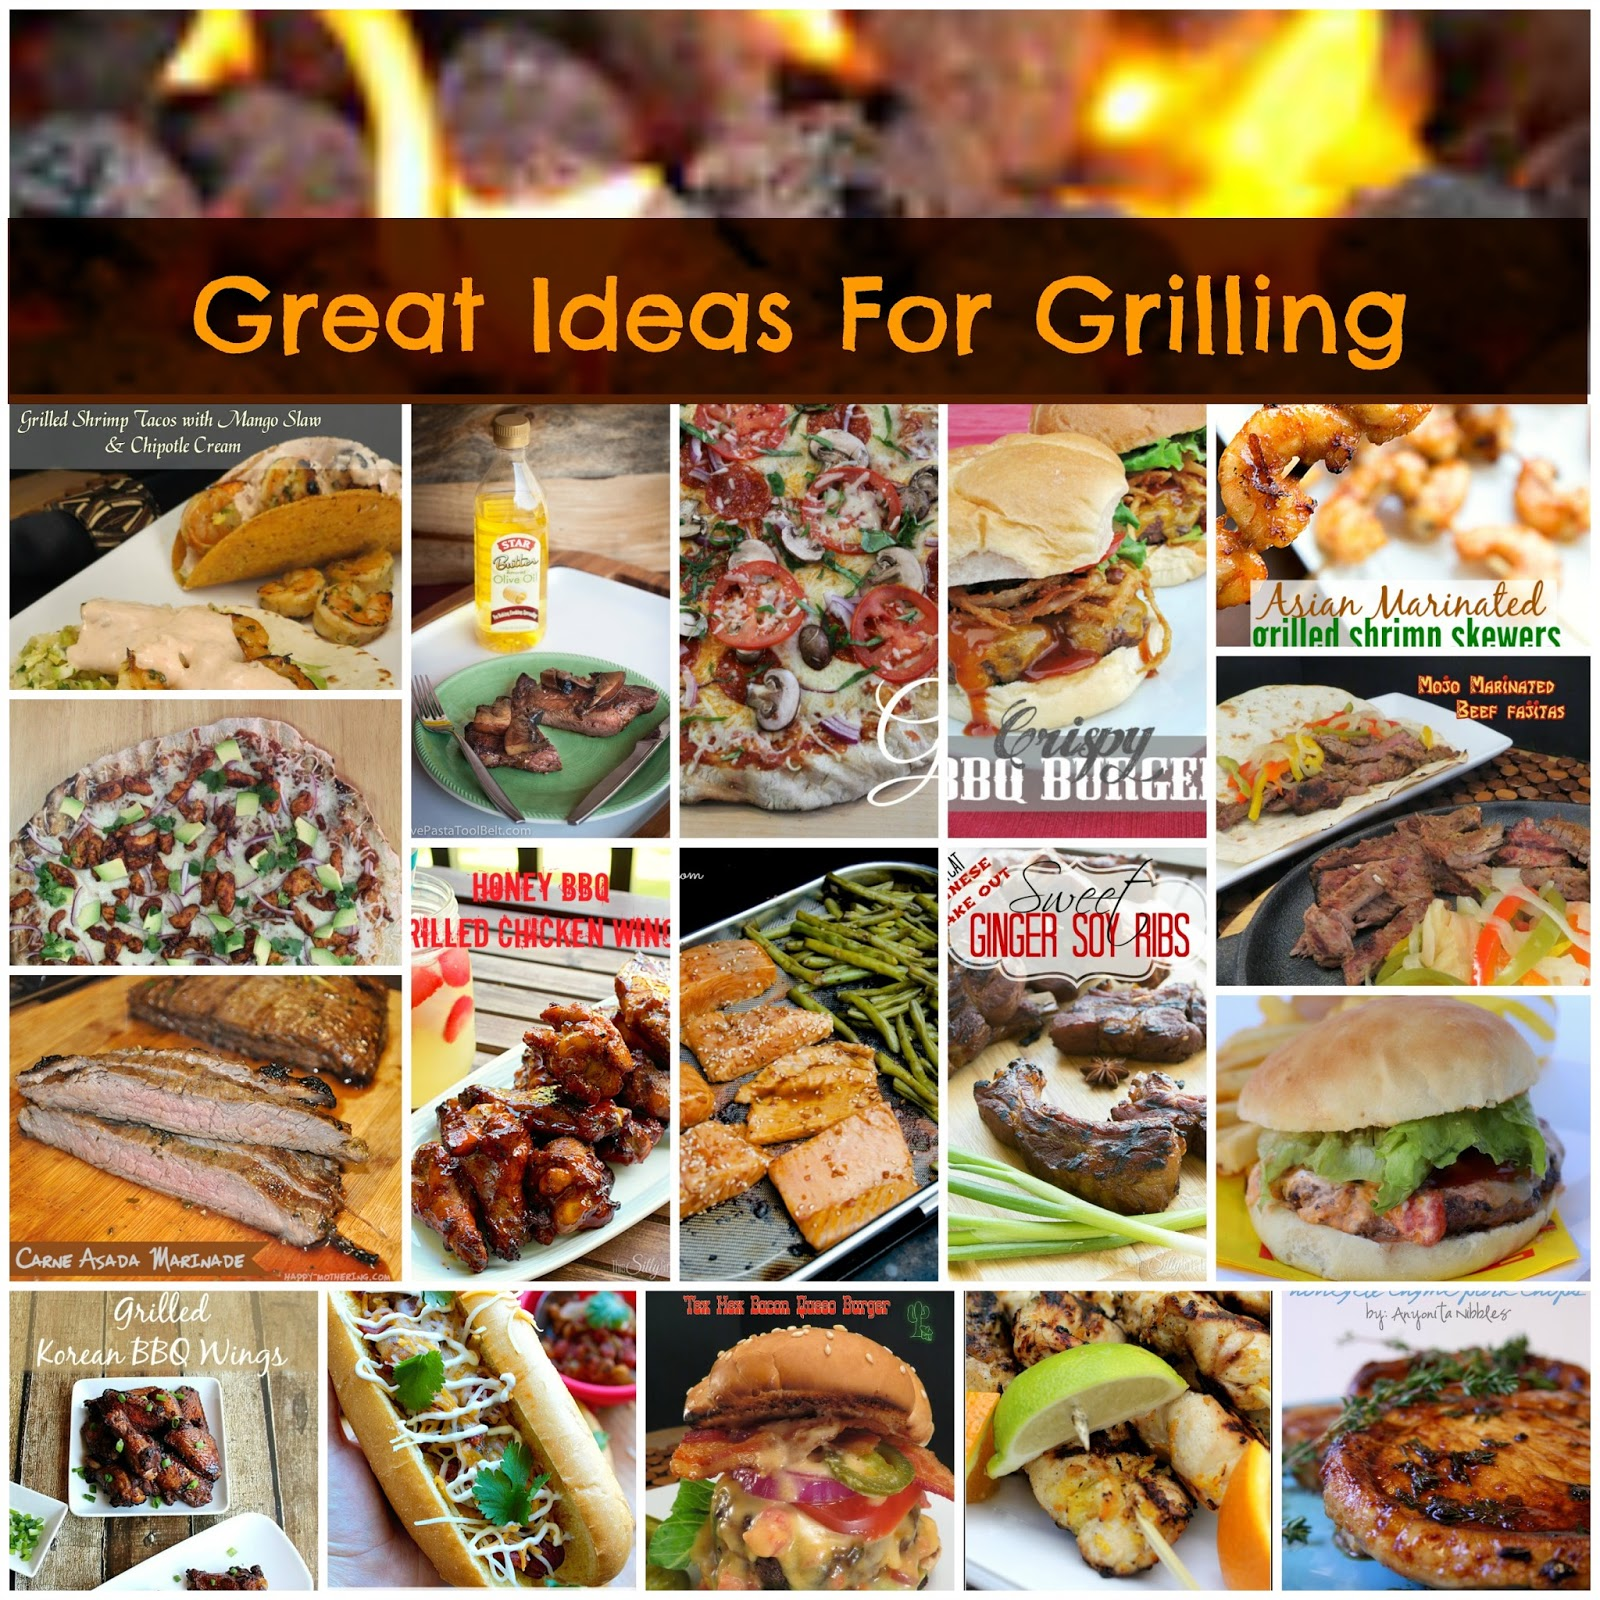 17 great ideas for grilling (for memorial day) | joybee, what's for